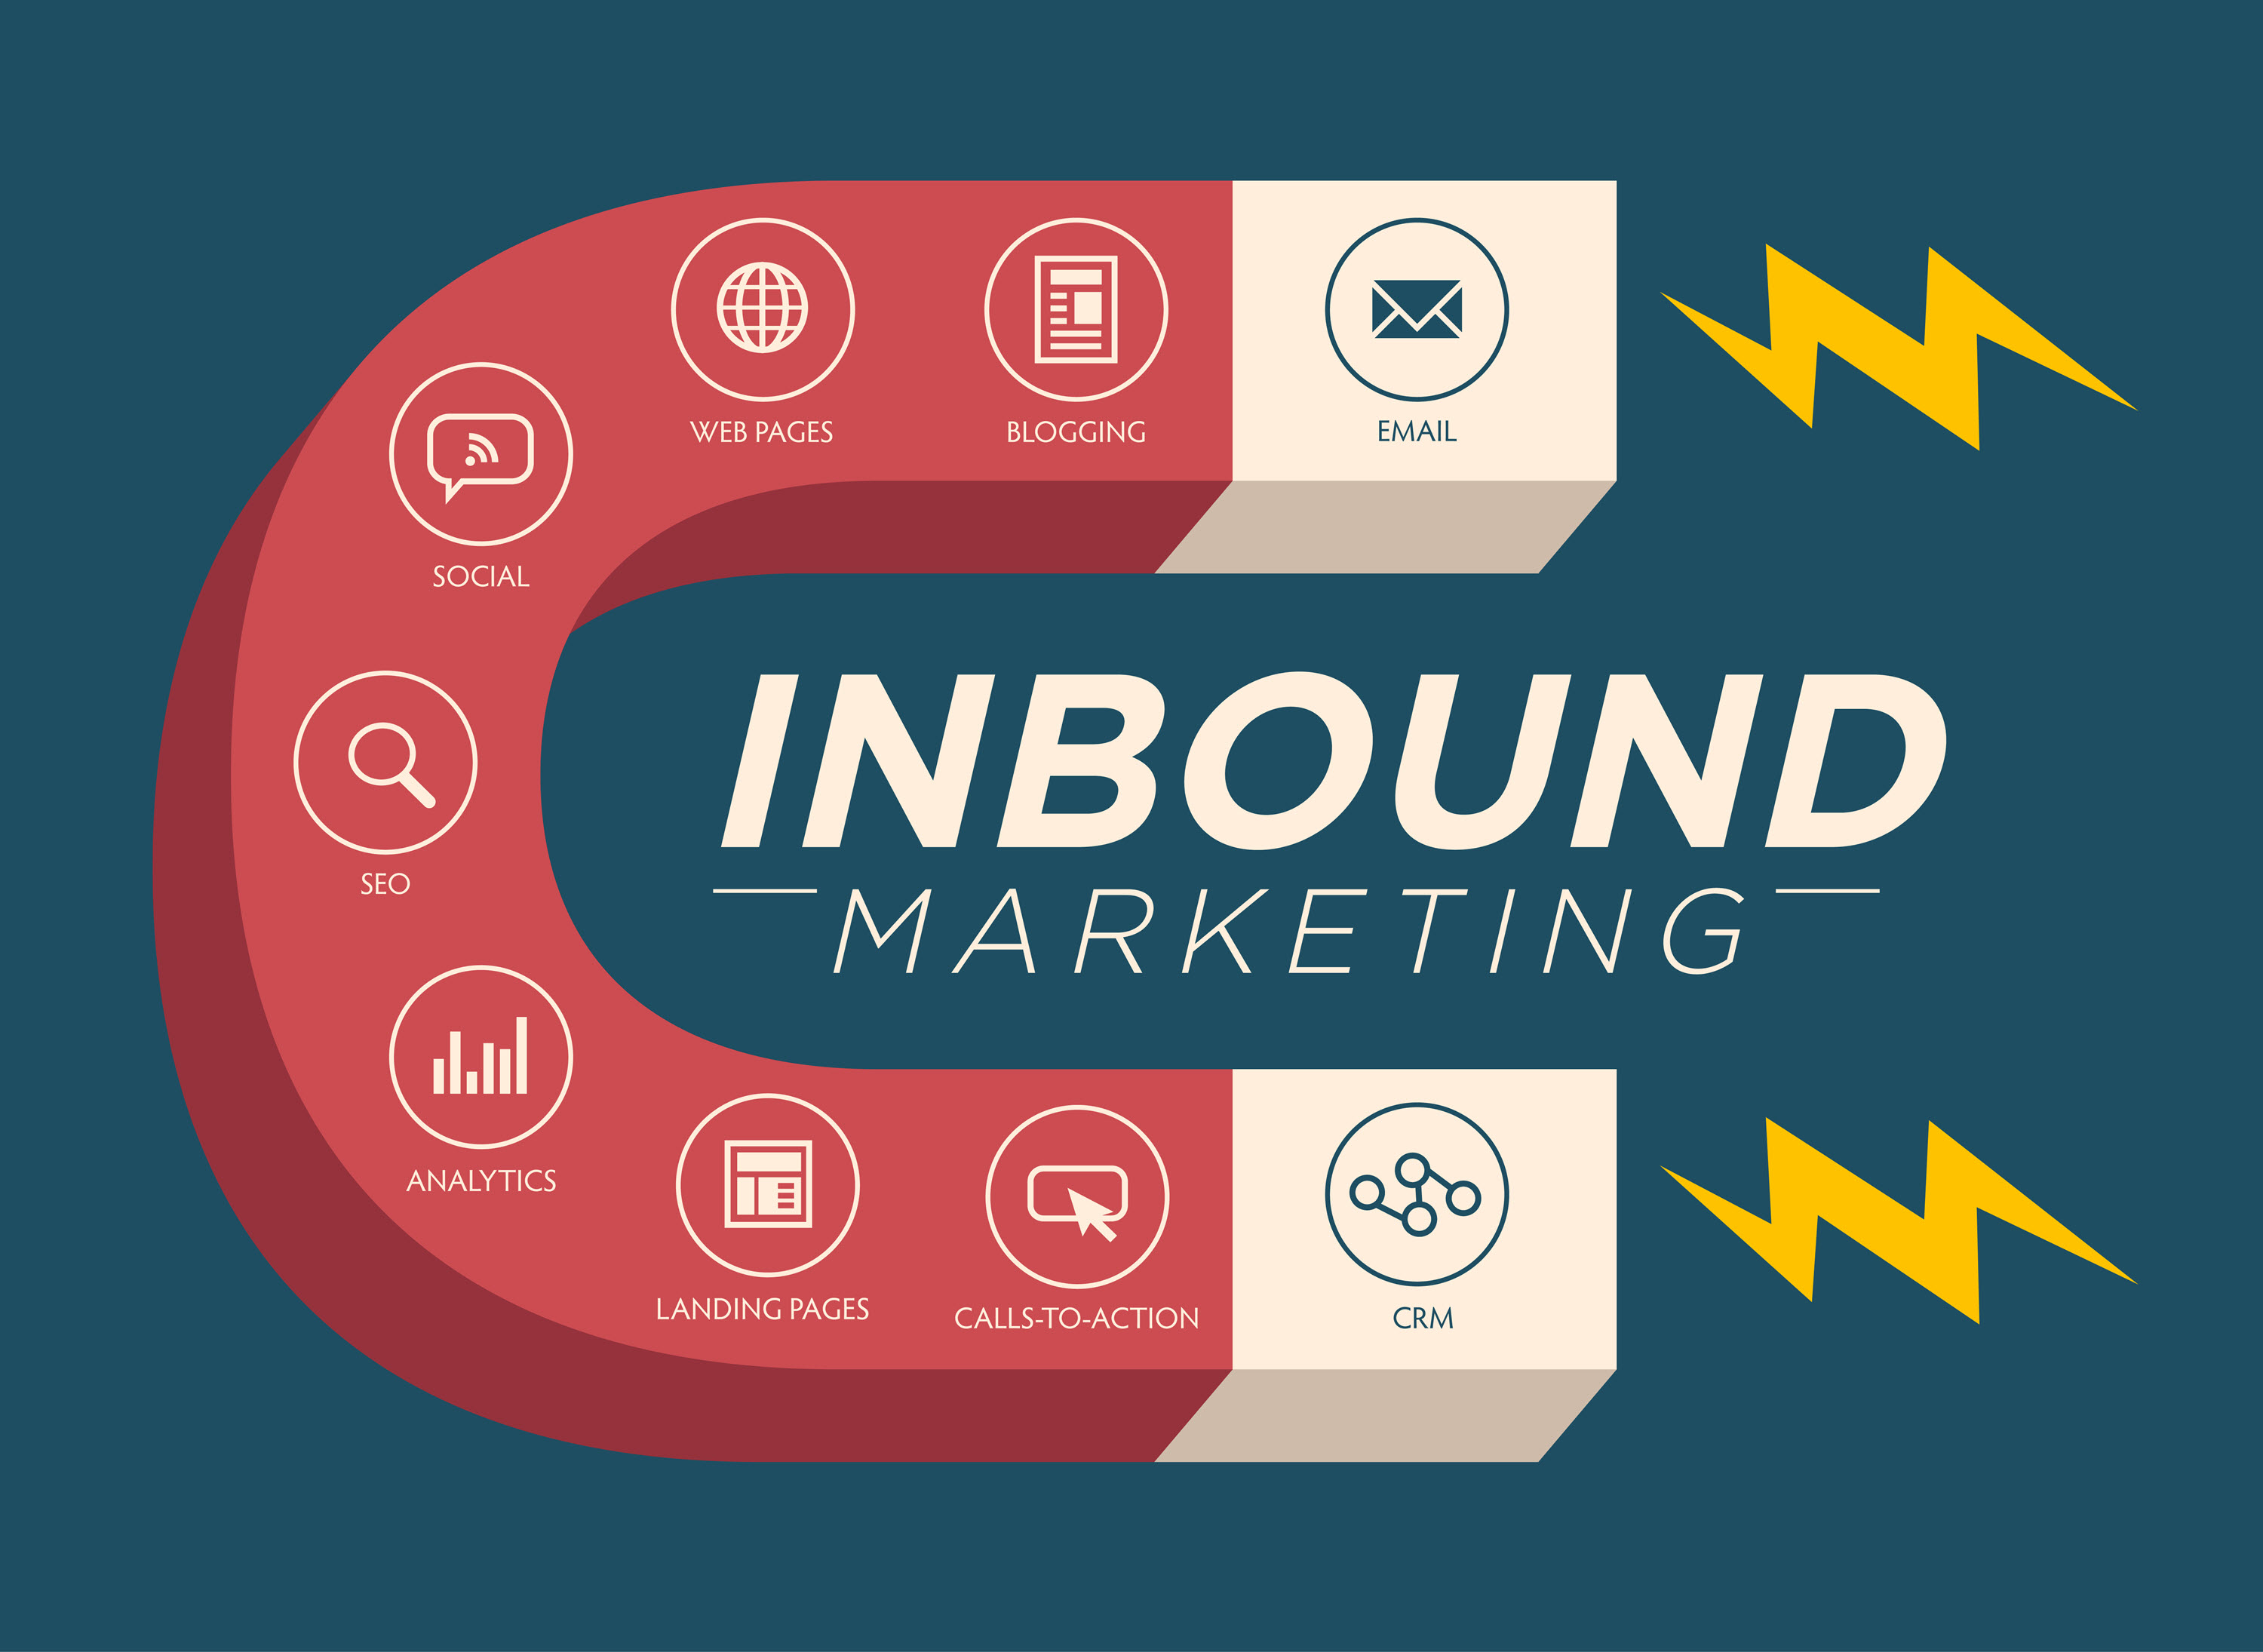 Inbound Marketing As A Way To Increase Interest To Your Business Website: 5 Tips